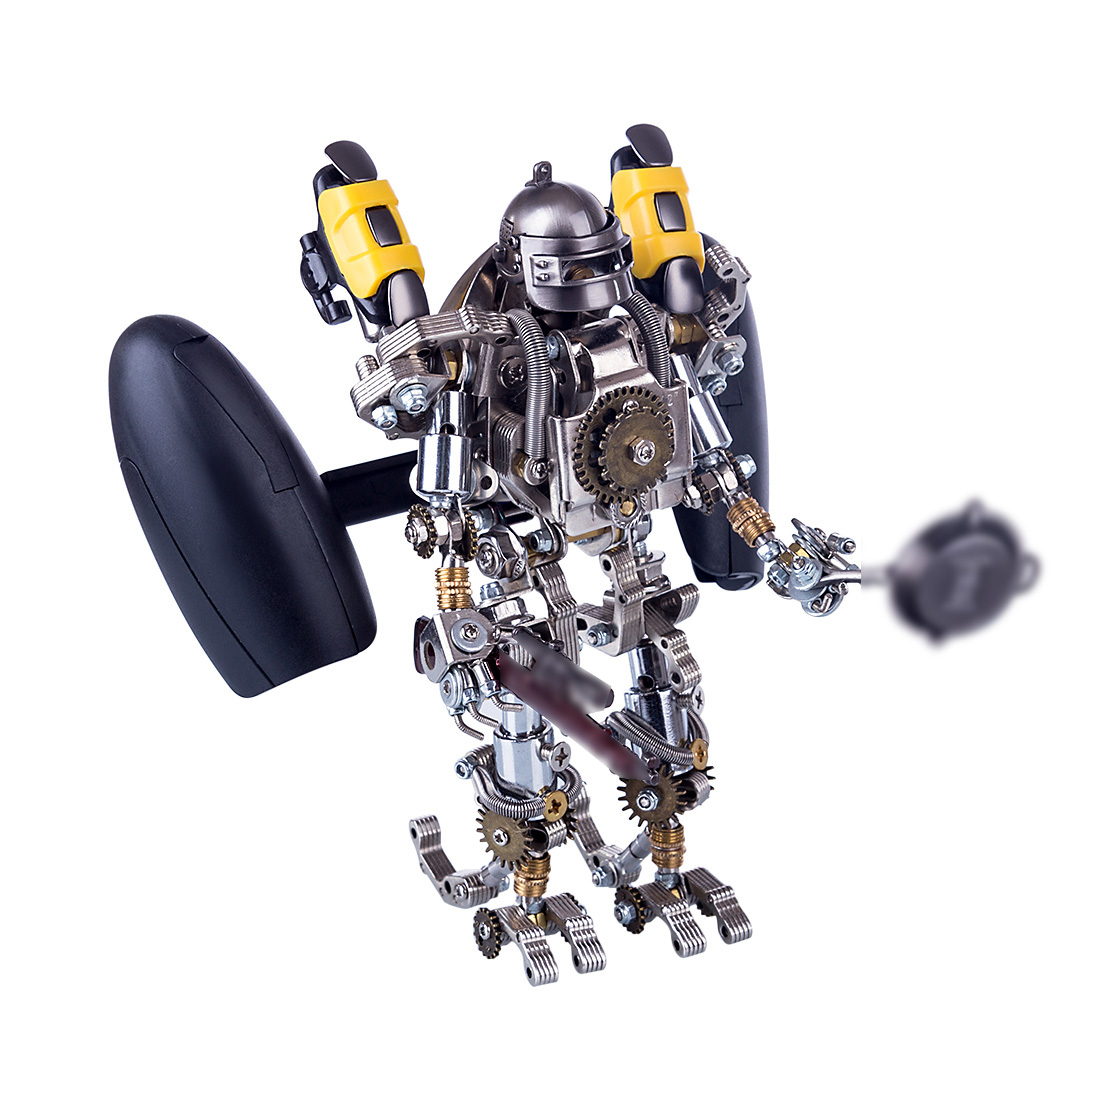 Mechanical Robot 3D Puzzle DIY Metal Assembly Model Kit